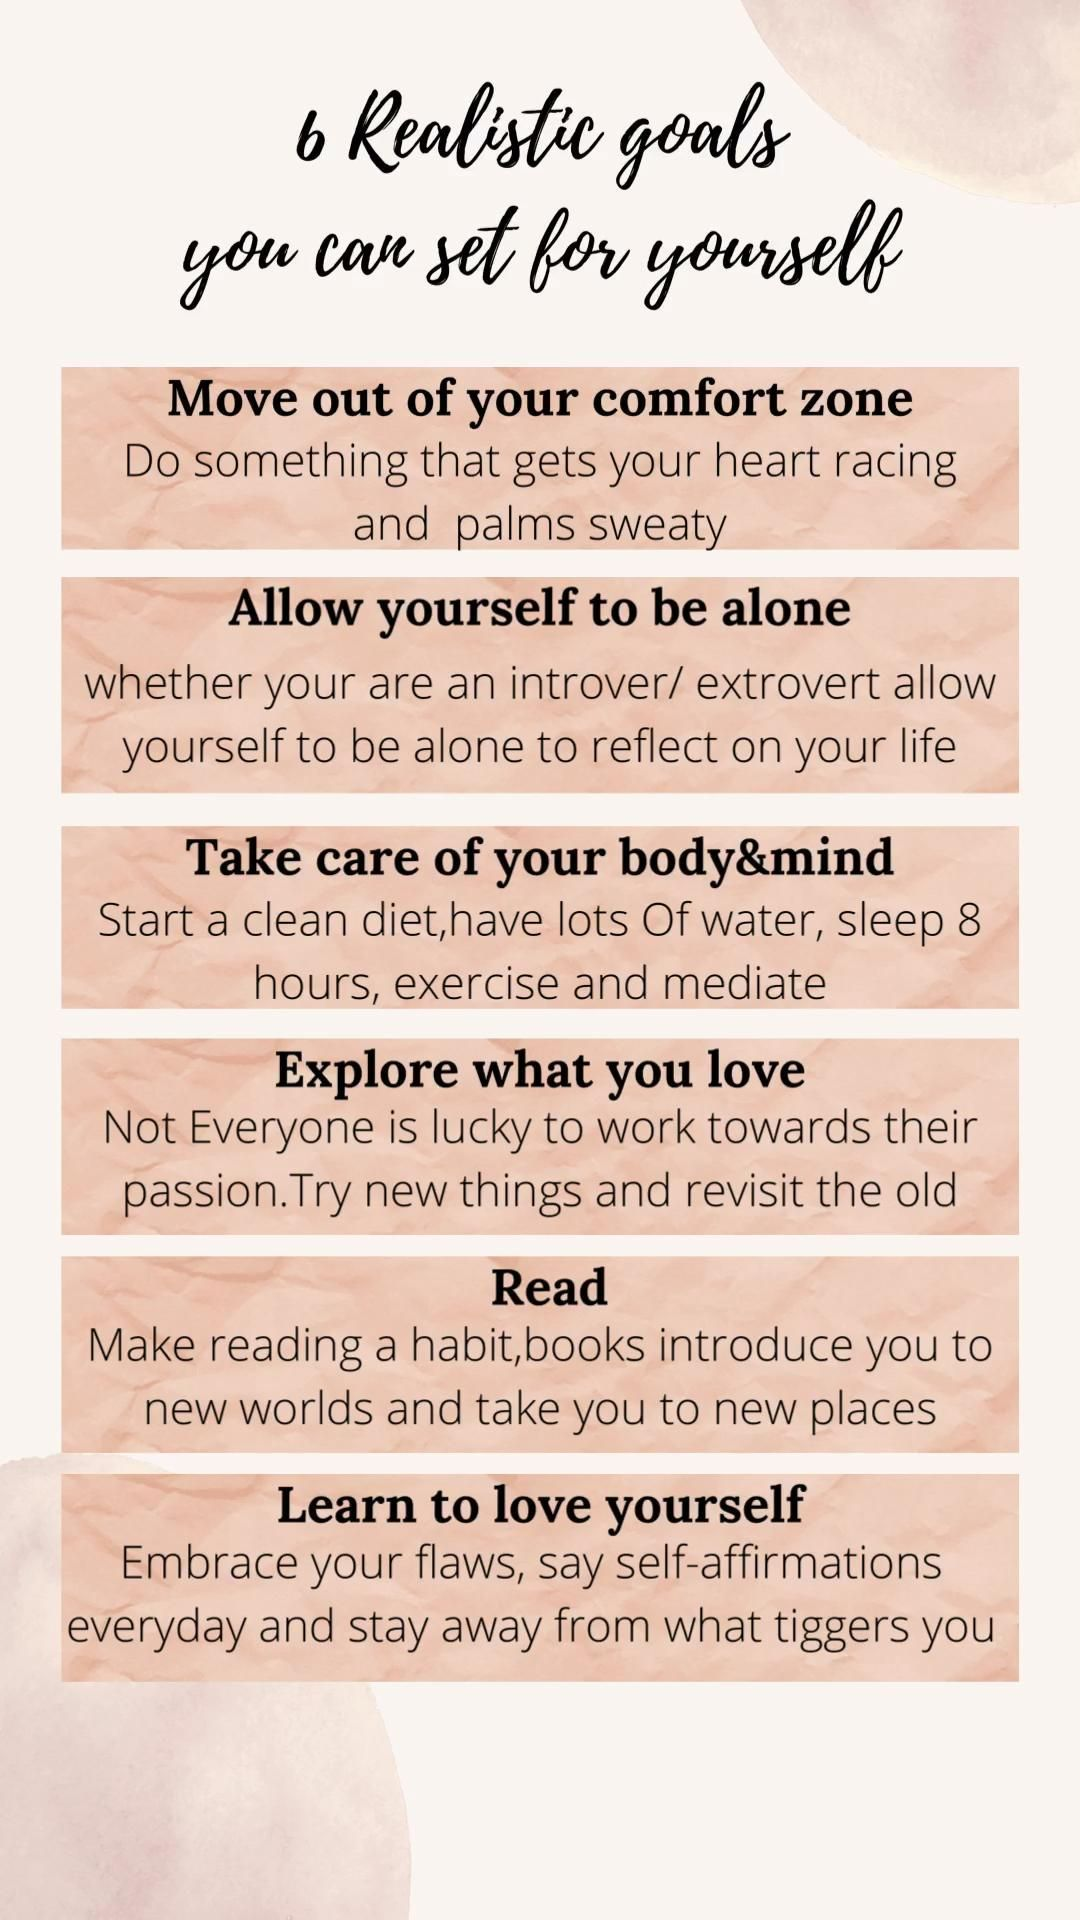 6 realistic goals for you